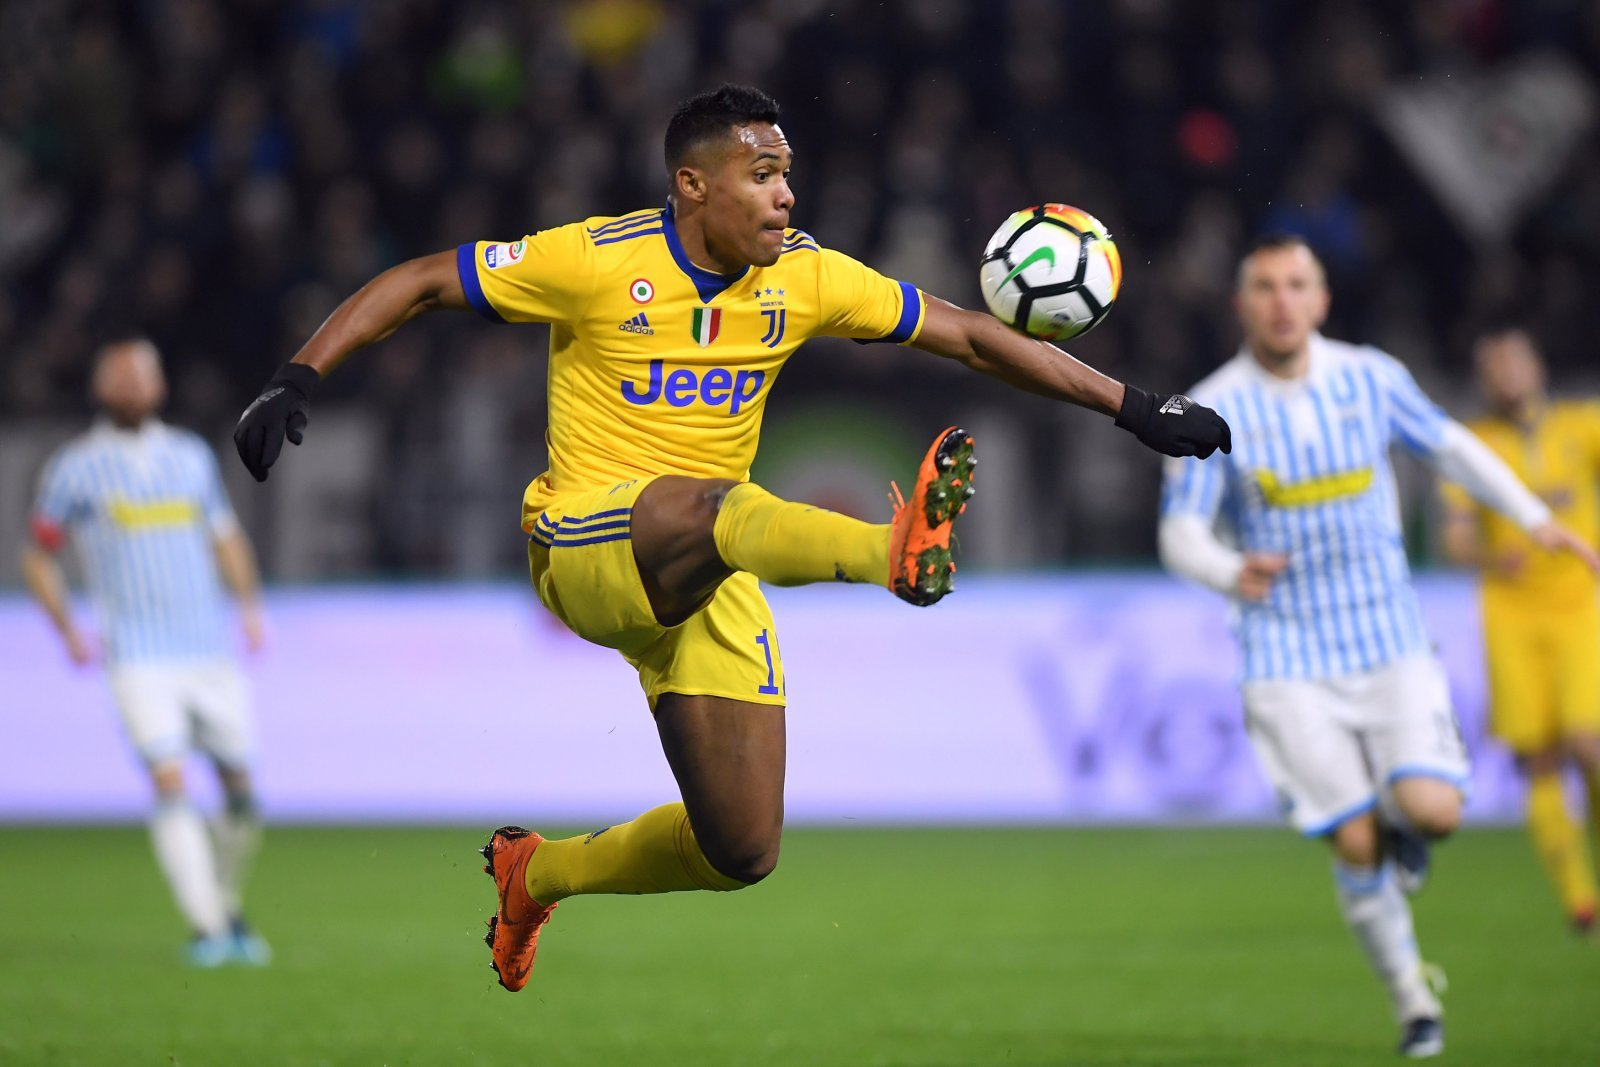 Signing Alex Sandro has to be Manchester United's priority this summer